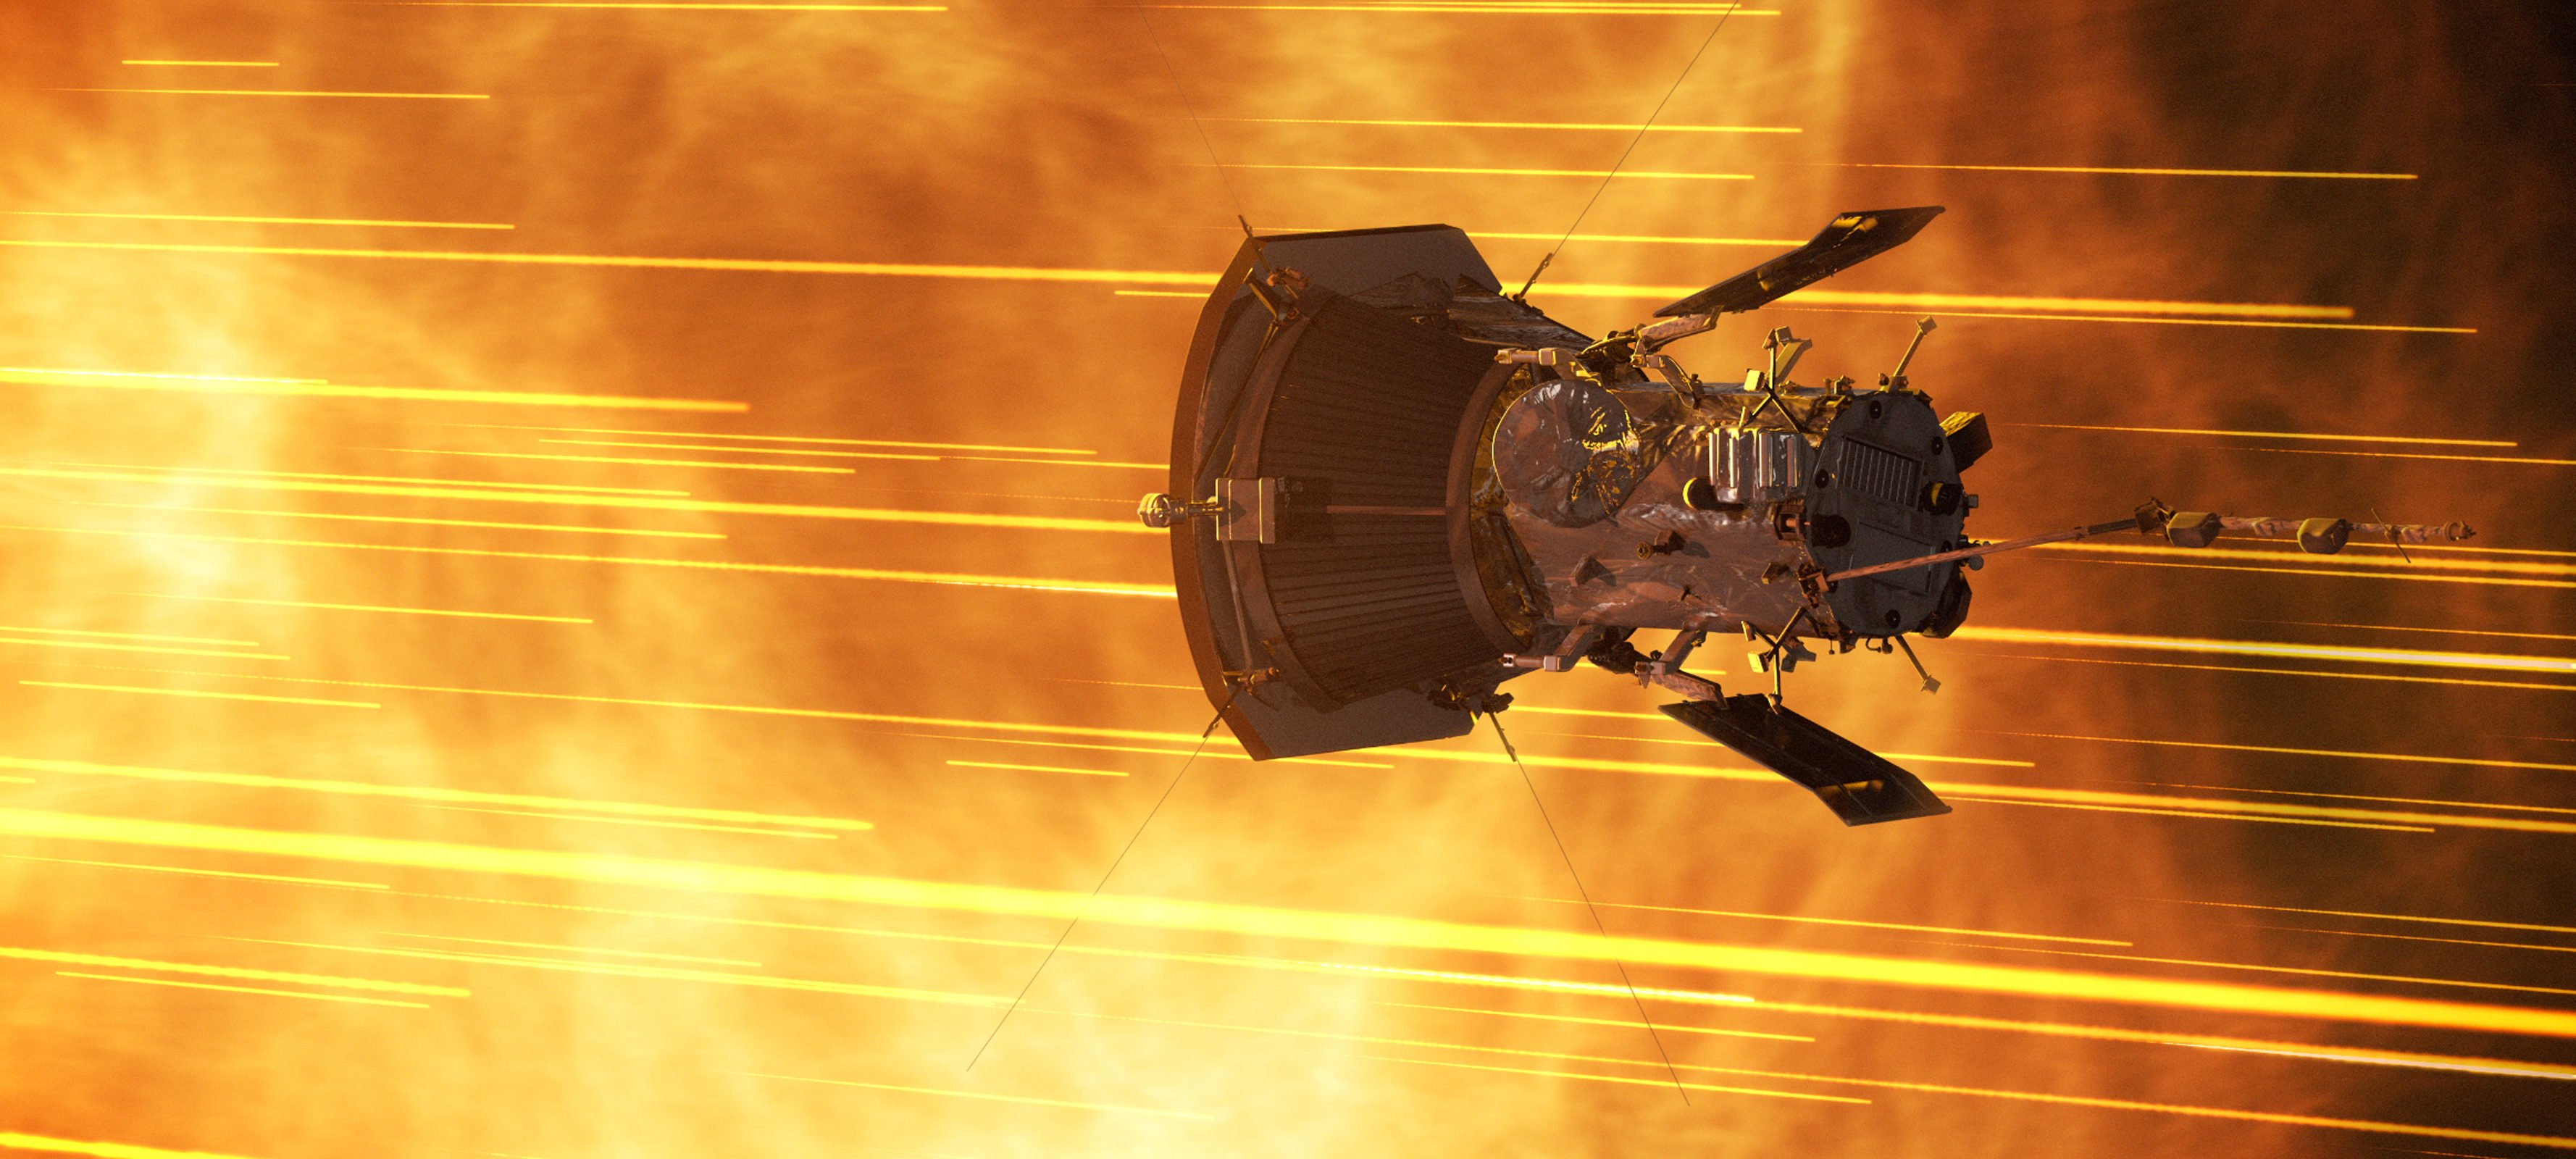 Parker Solar Probe approaching the sun